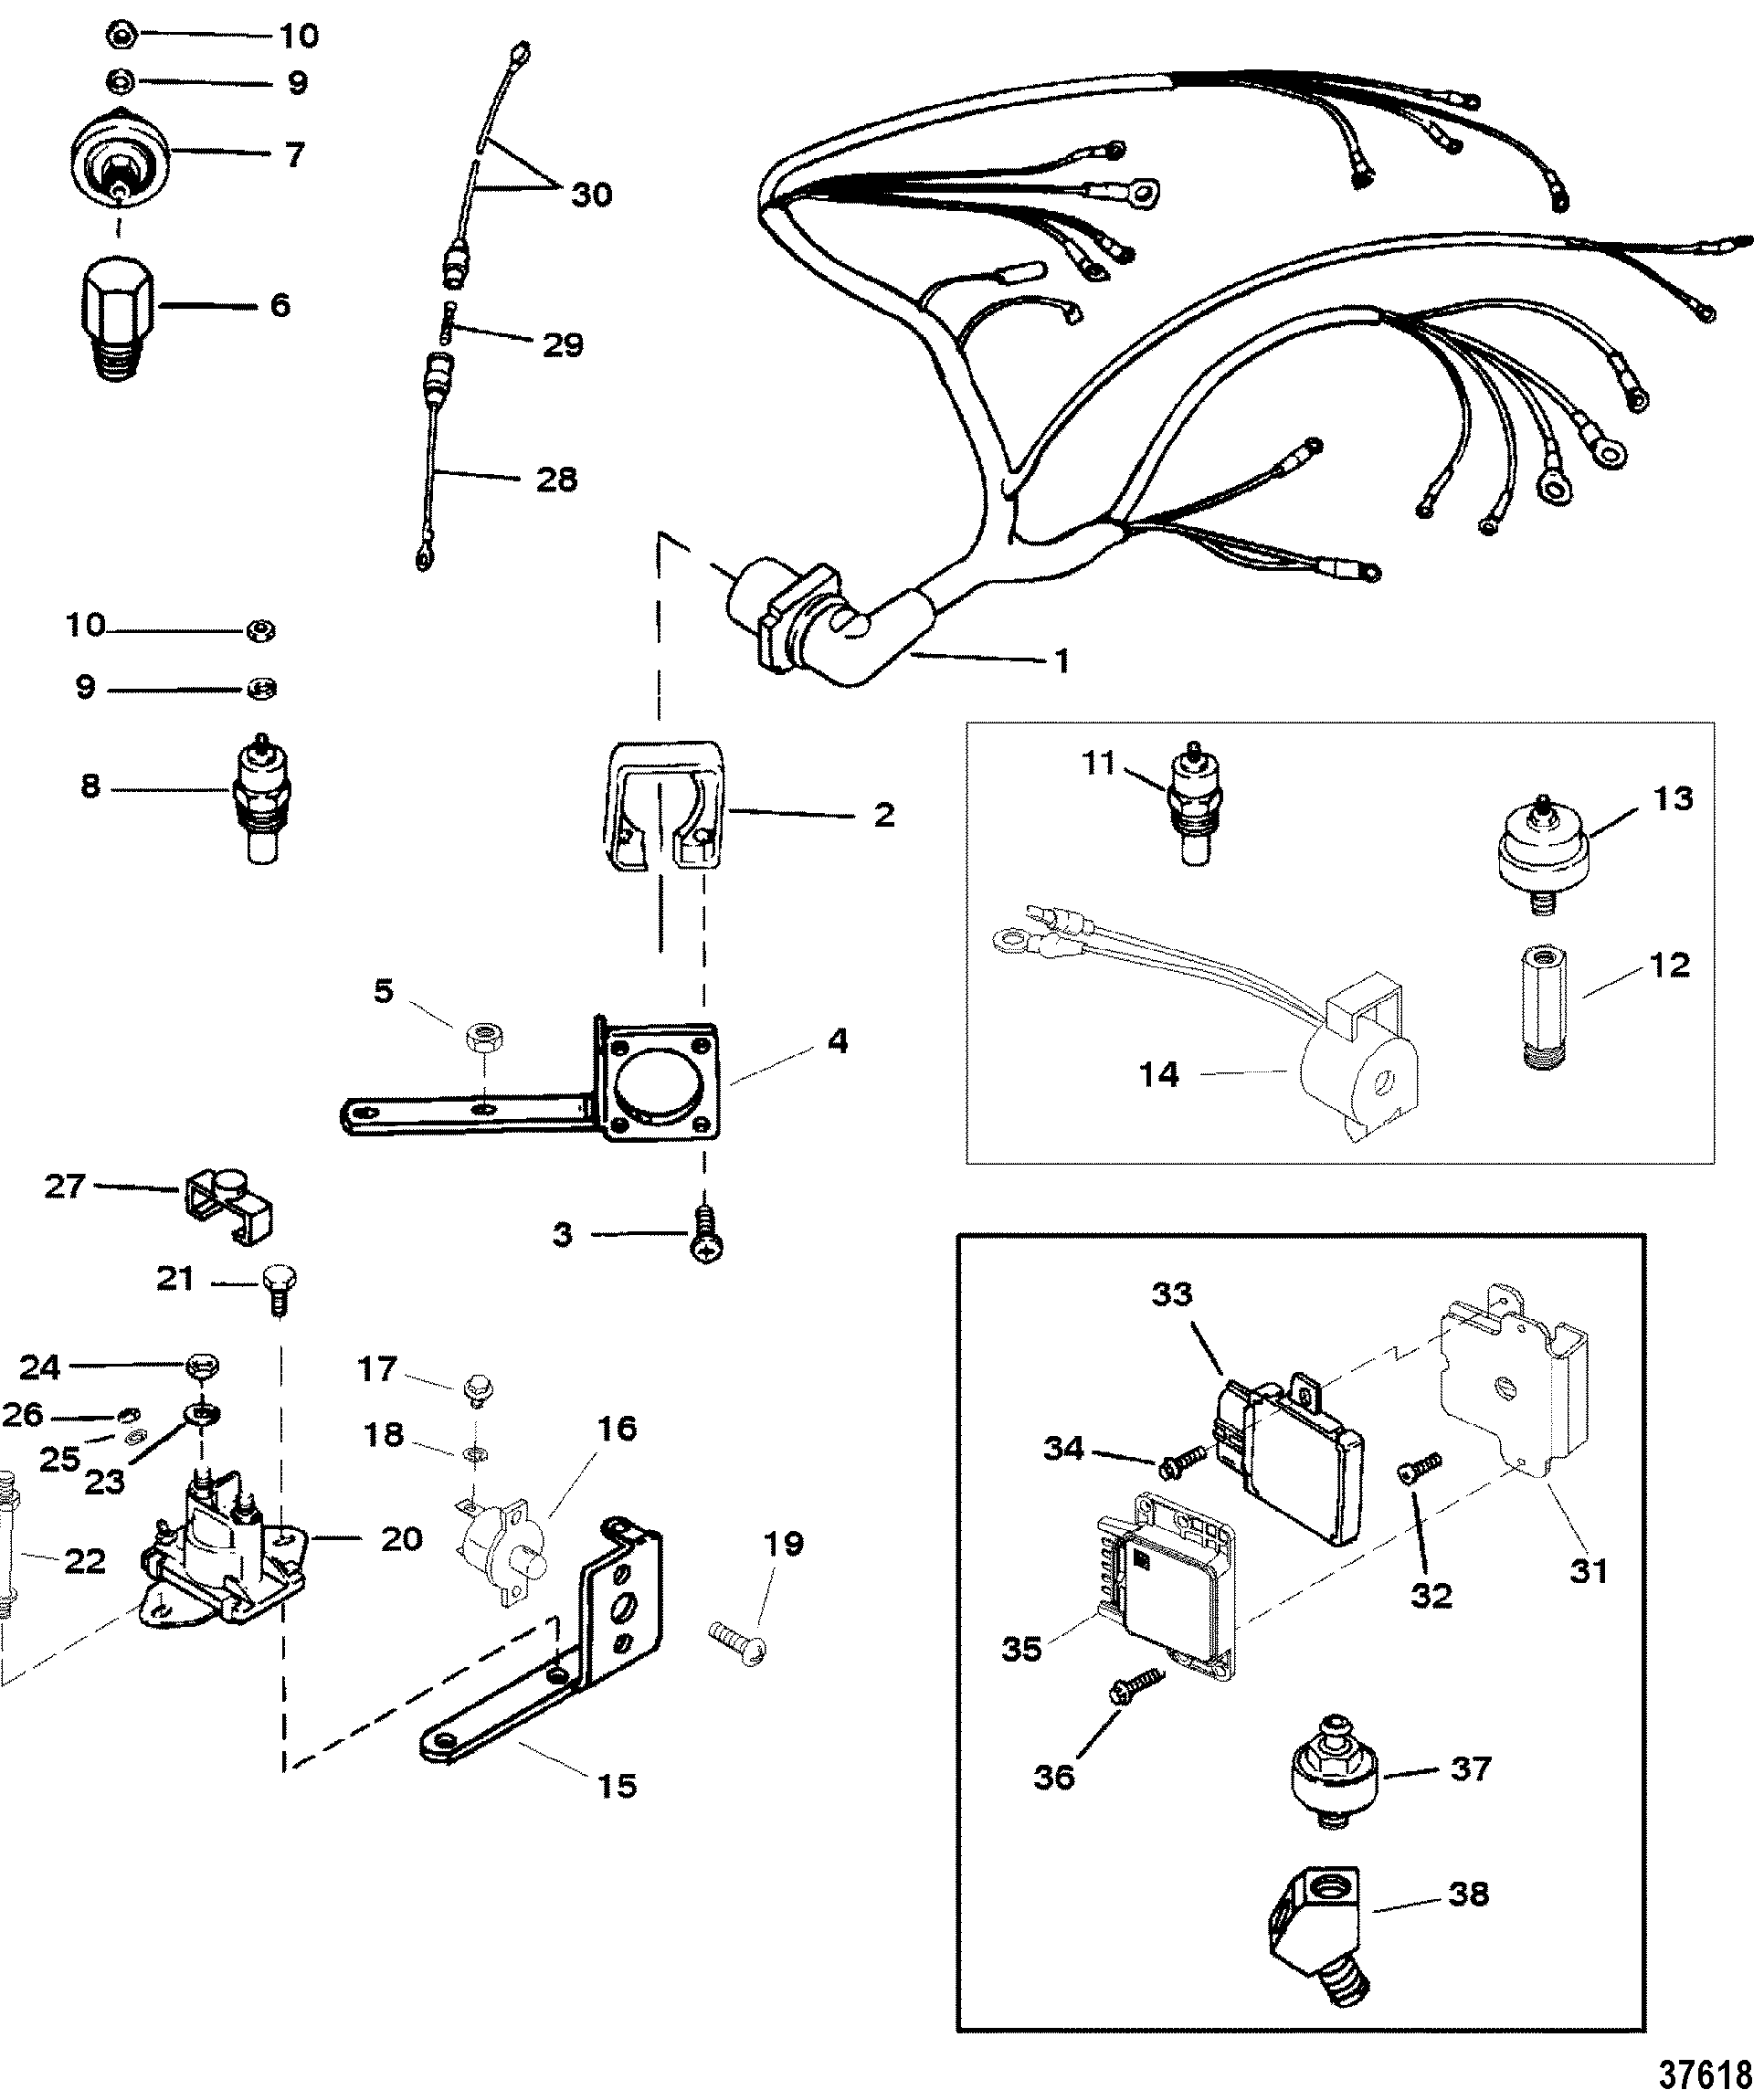 Hardin Marine - Wiring Harness And Electrical Components